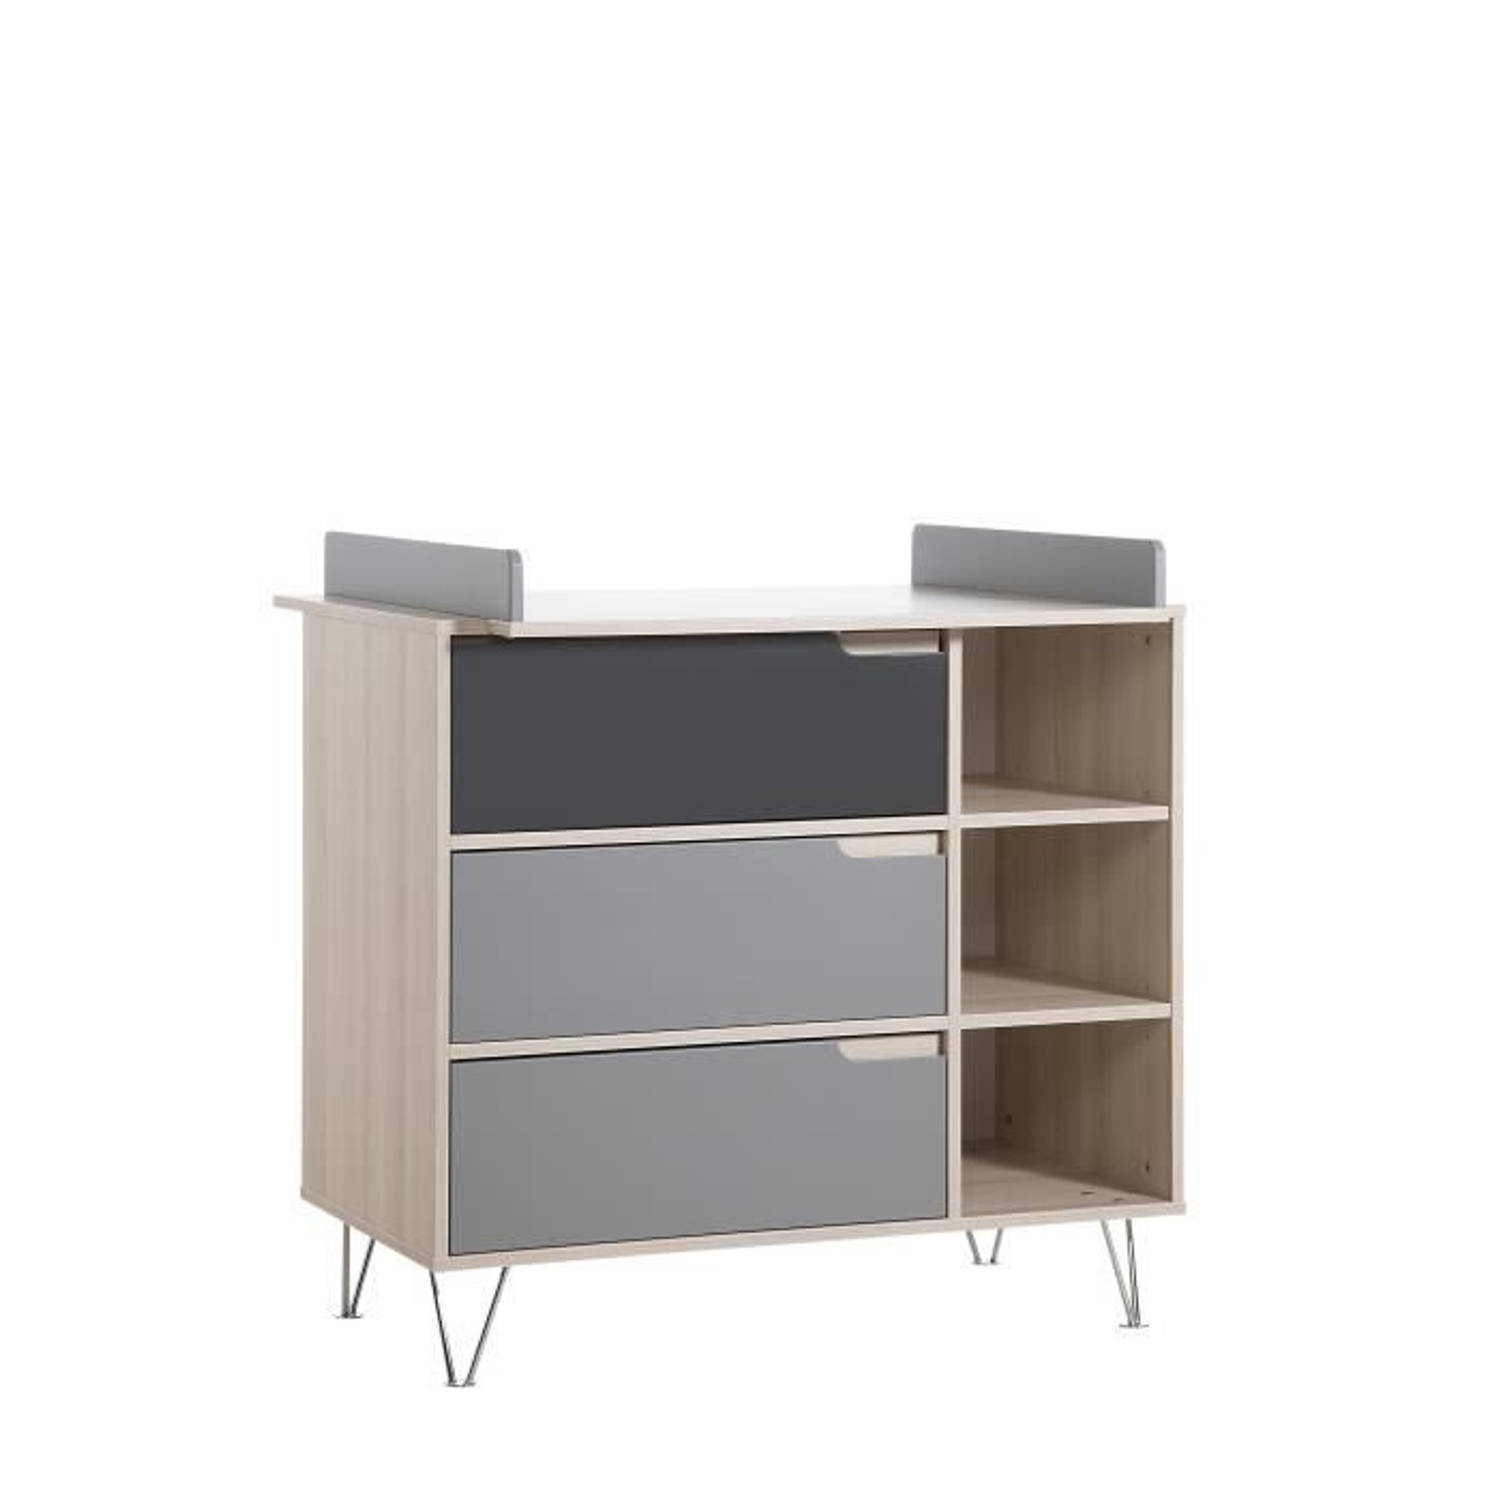 Korting Geuther Marit Commode Acacia Grijs Commode Inclusief Commode